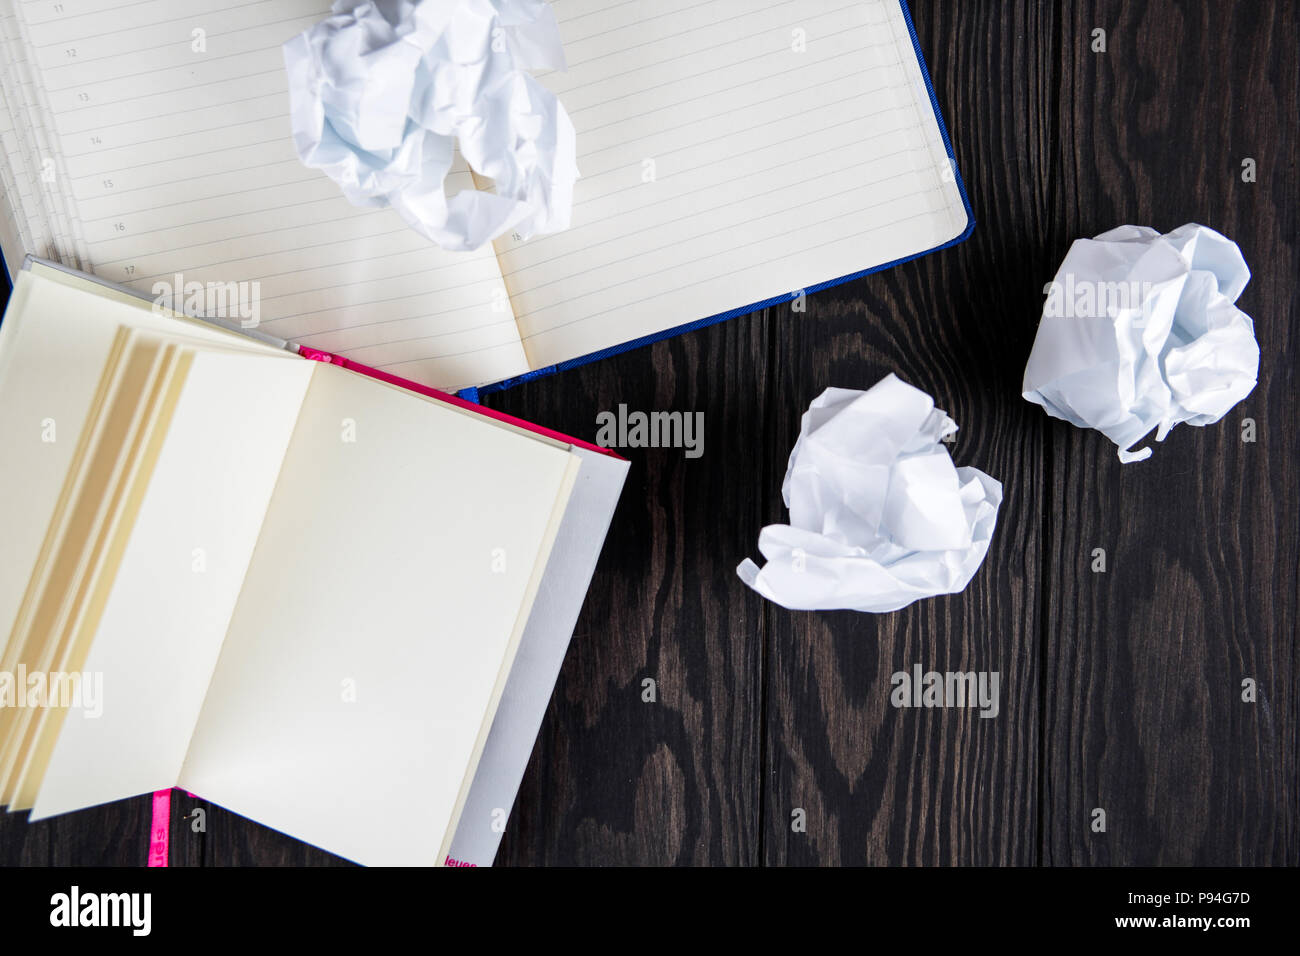 White note pad on a wooden table. near the notepads lies lot crumpled paper. Stock Photo